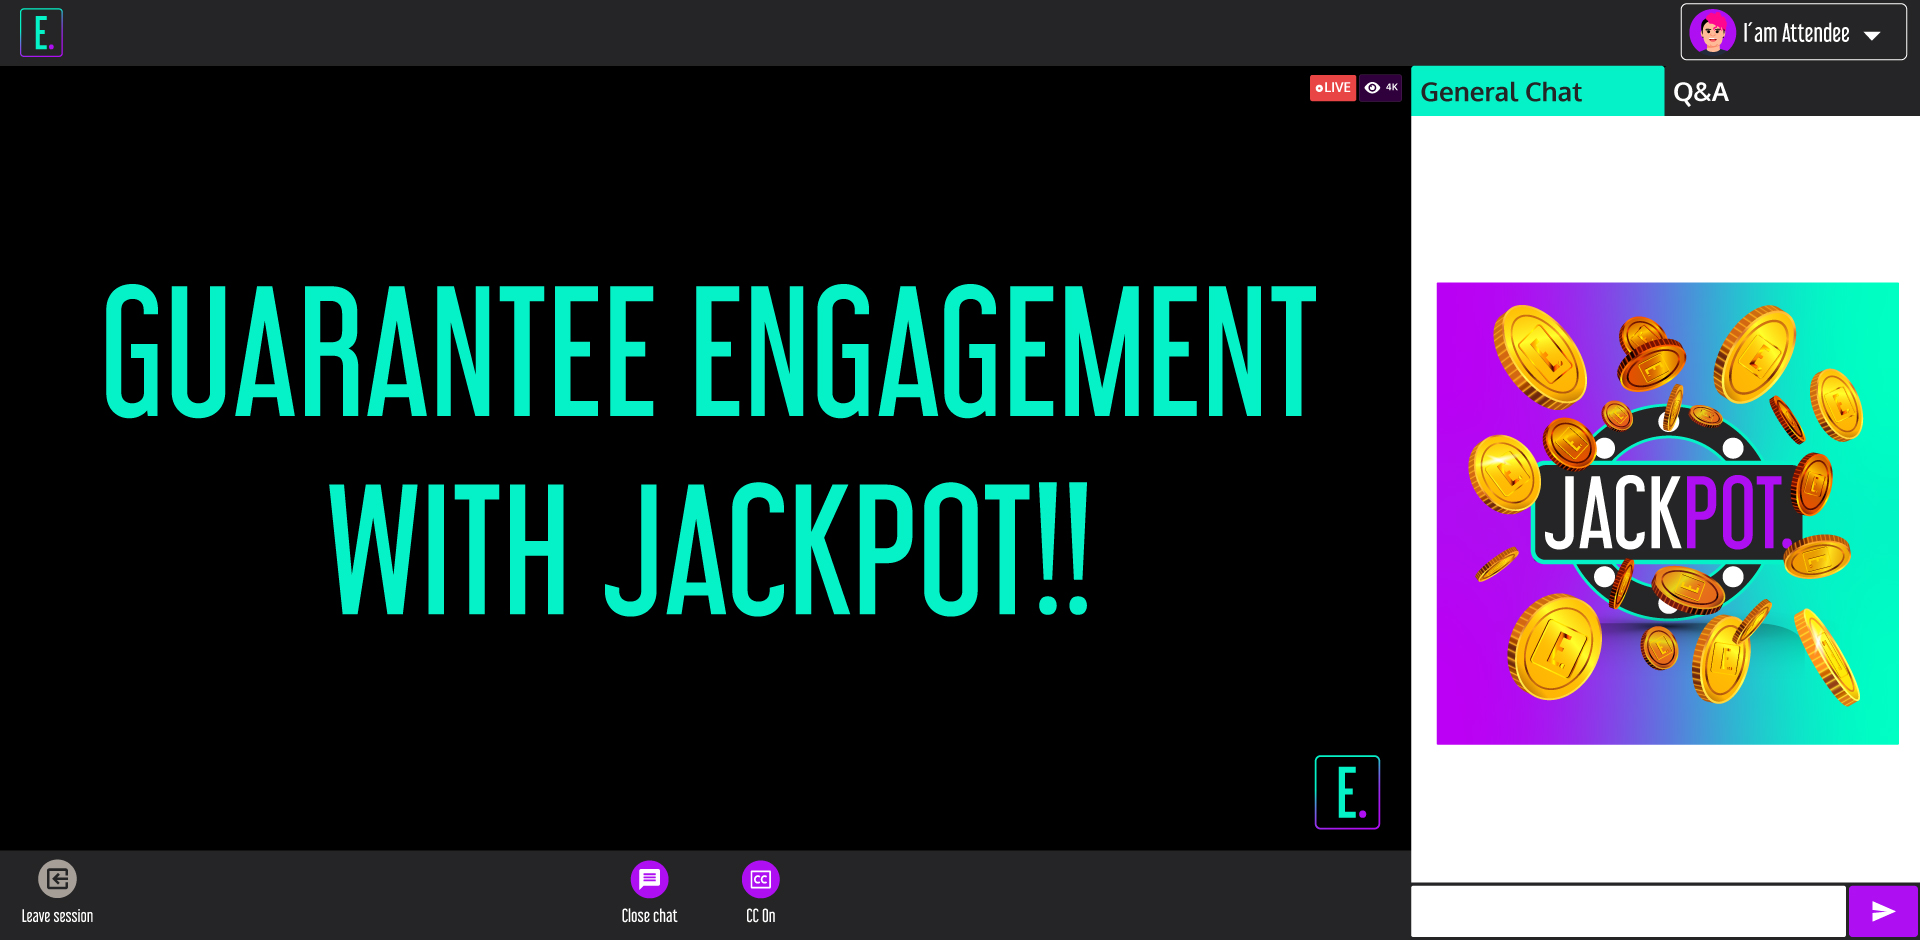 Guarantee engagement with Jackpot